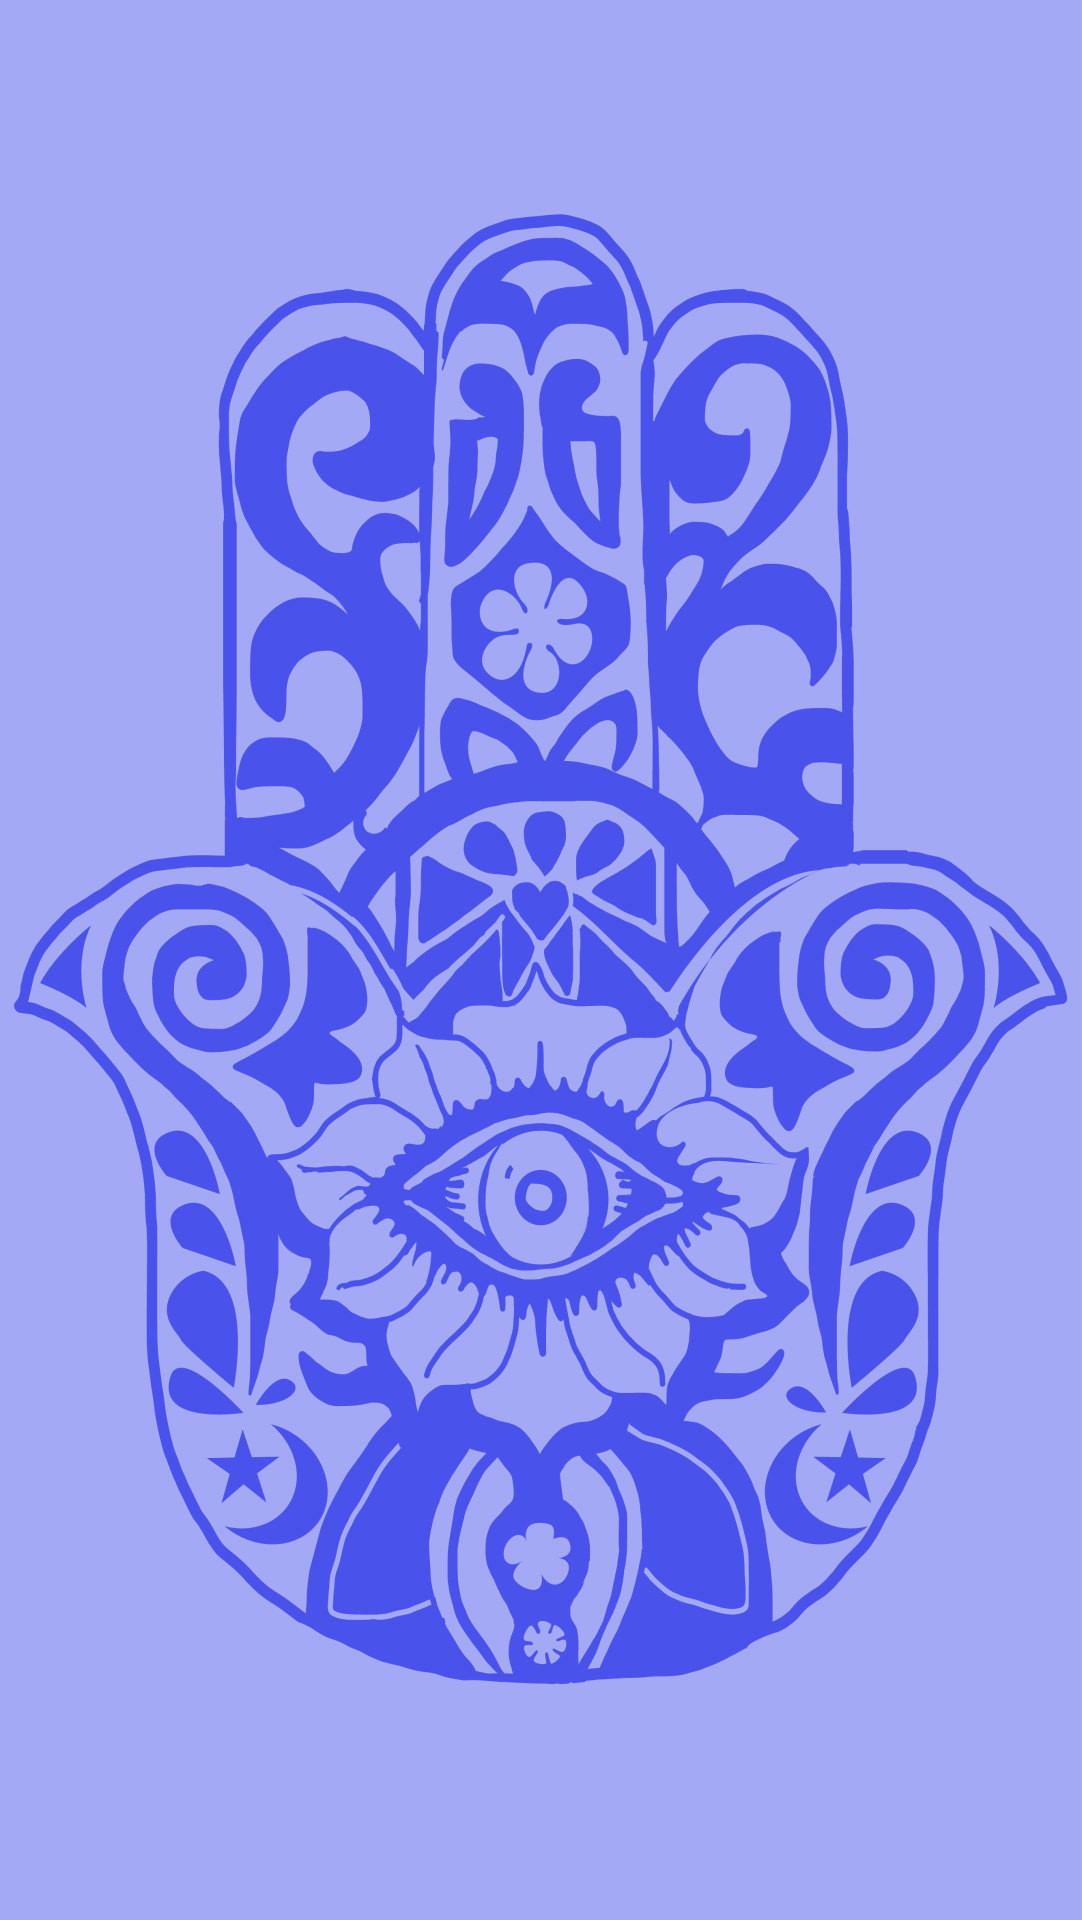 Res: 1082x1920, hamsa print evil eye free iphone wallpaper protection free iphone evil eye  print hamsa backrounds wallpaper